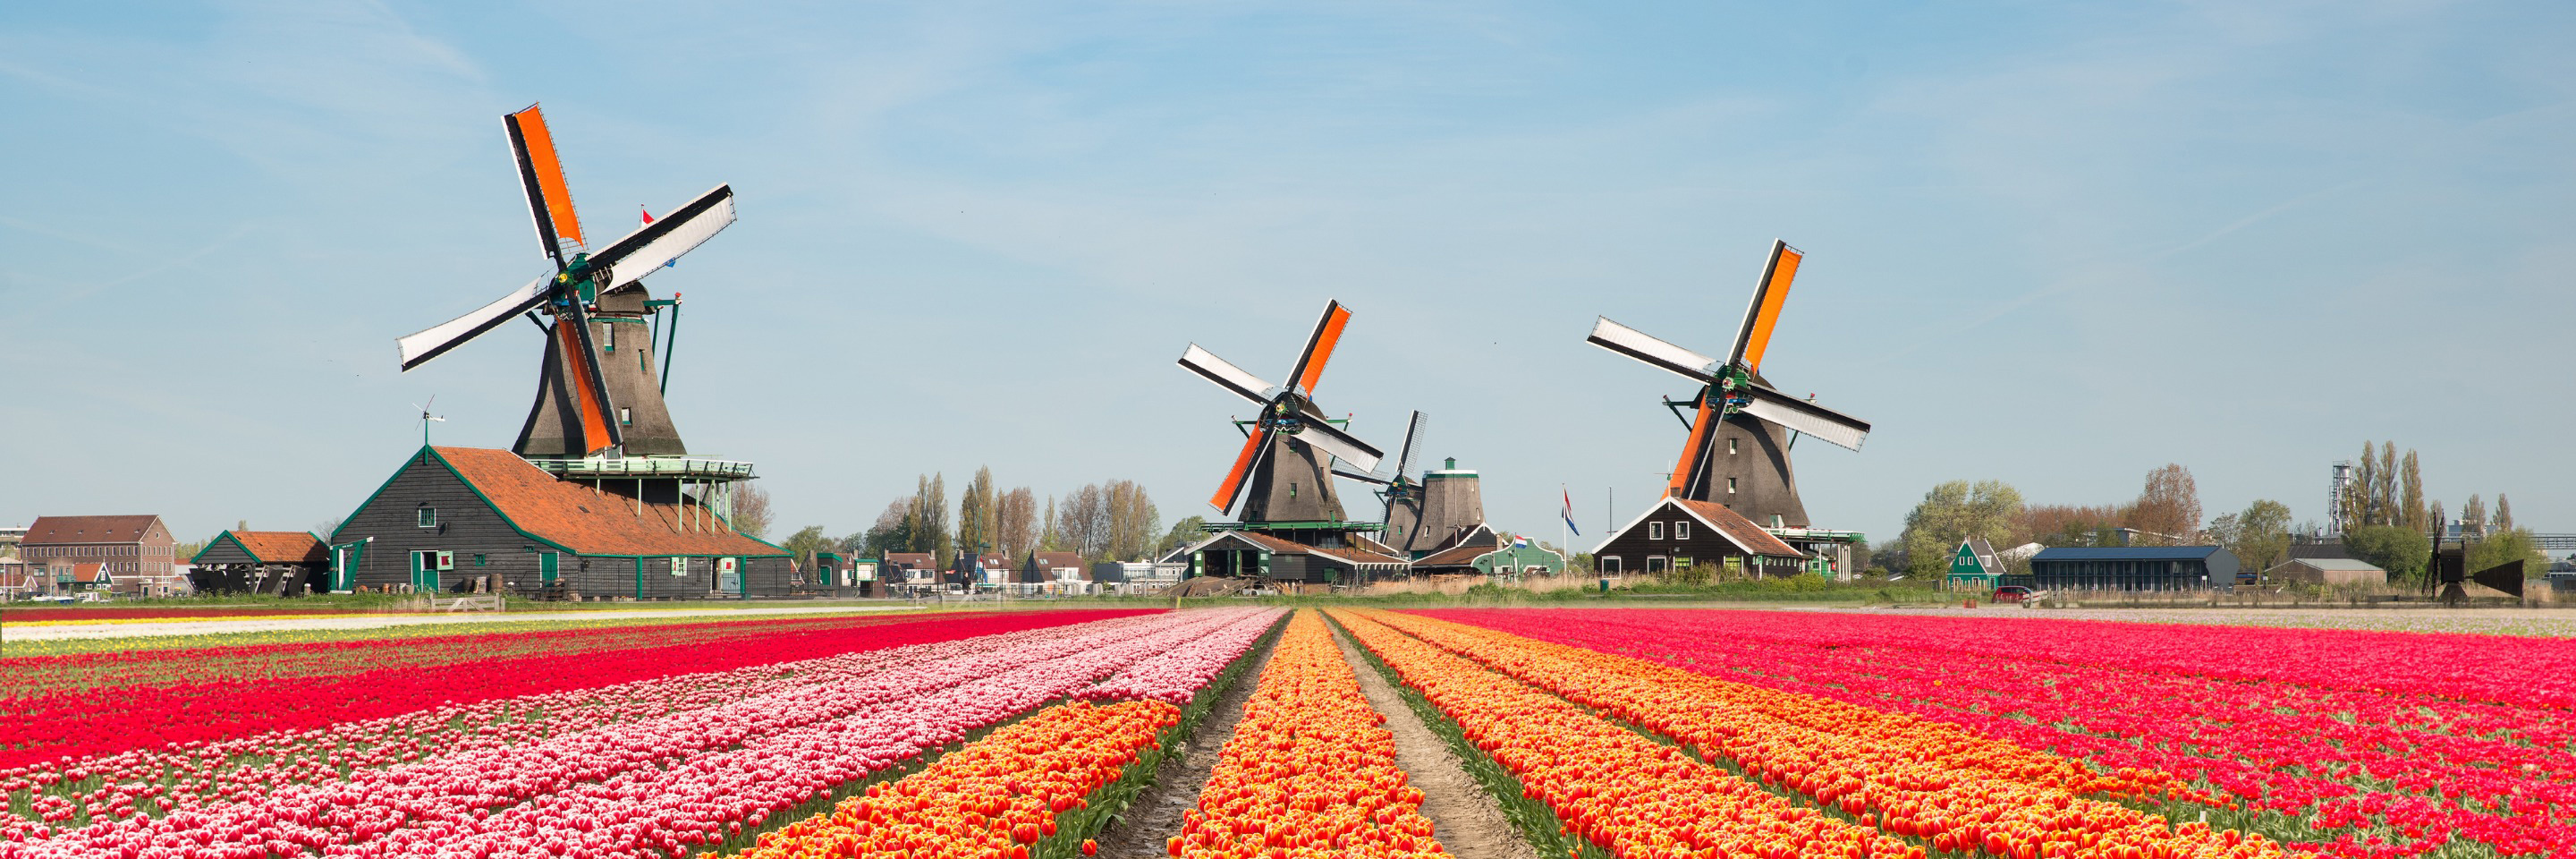 Tulips of Northern Holland for Garden & Nature Lovers